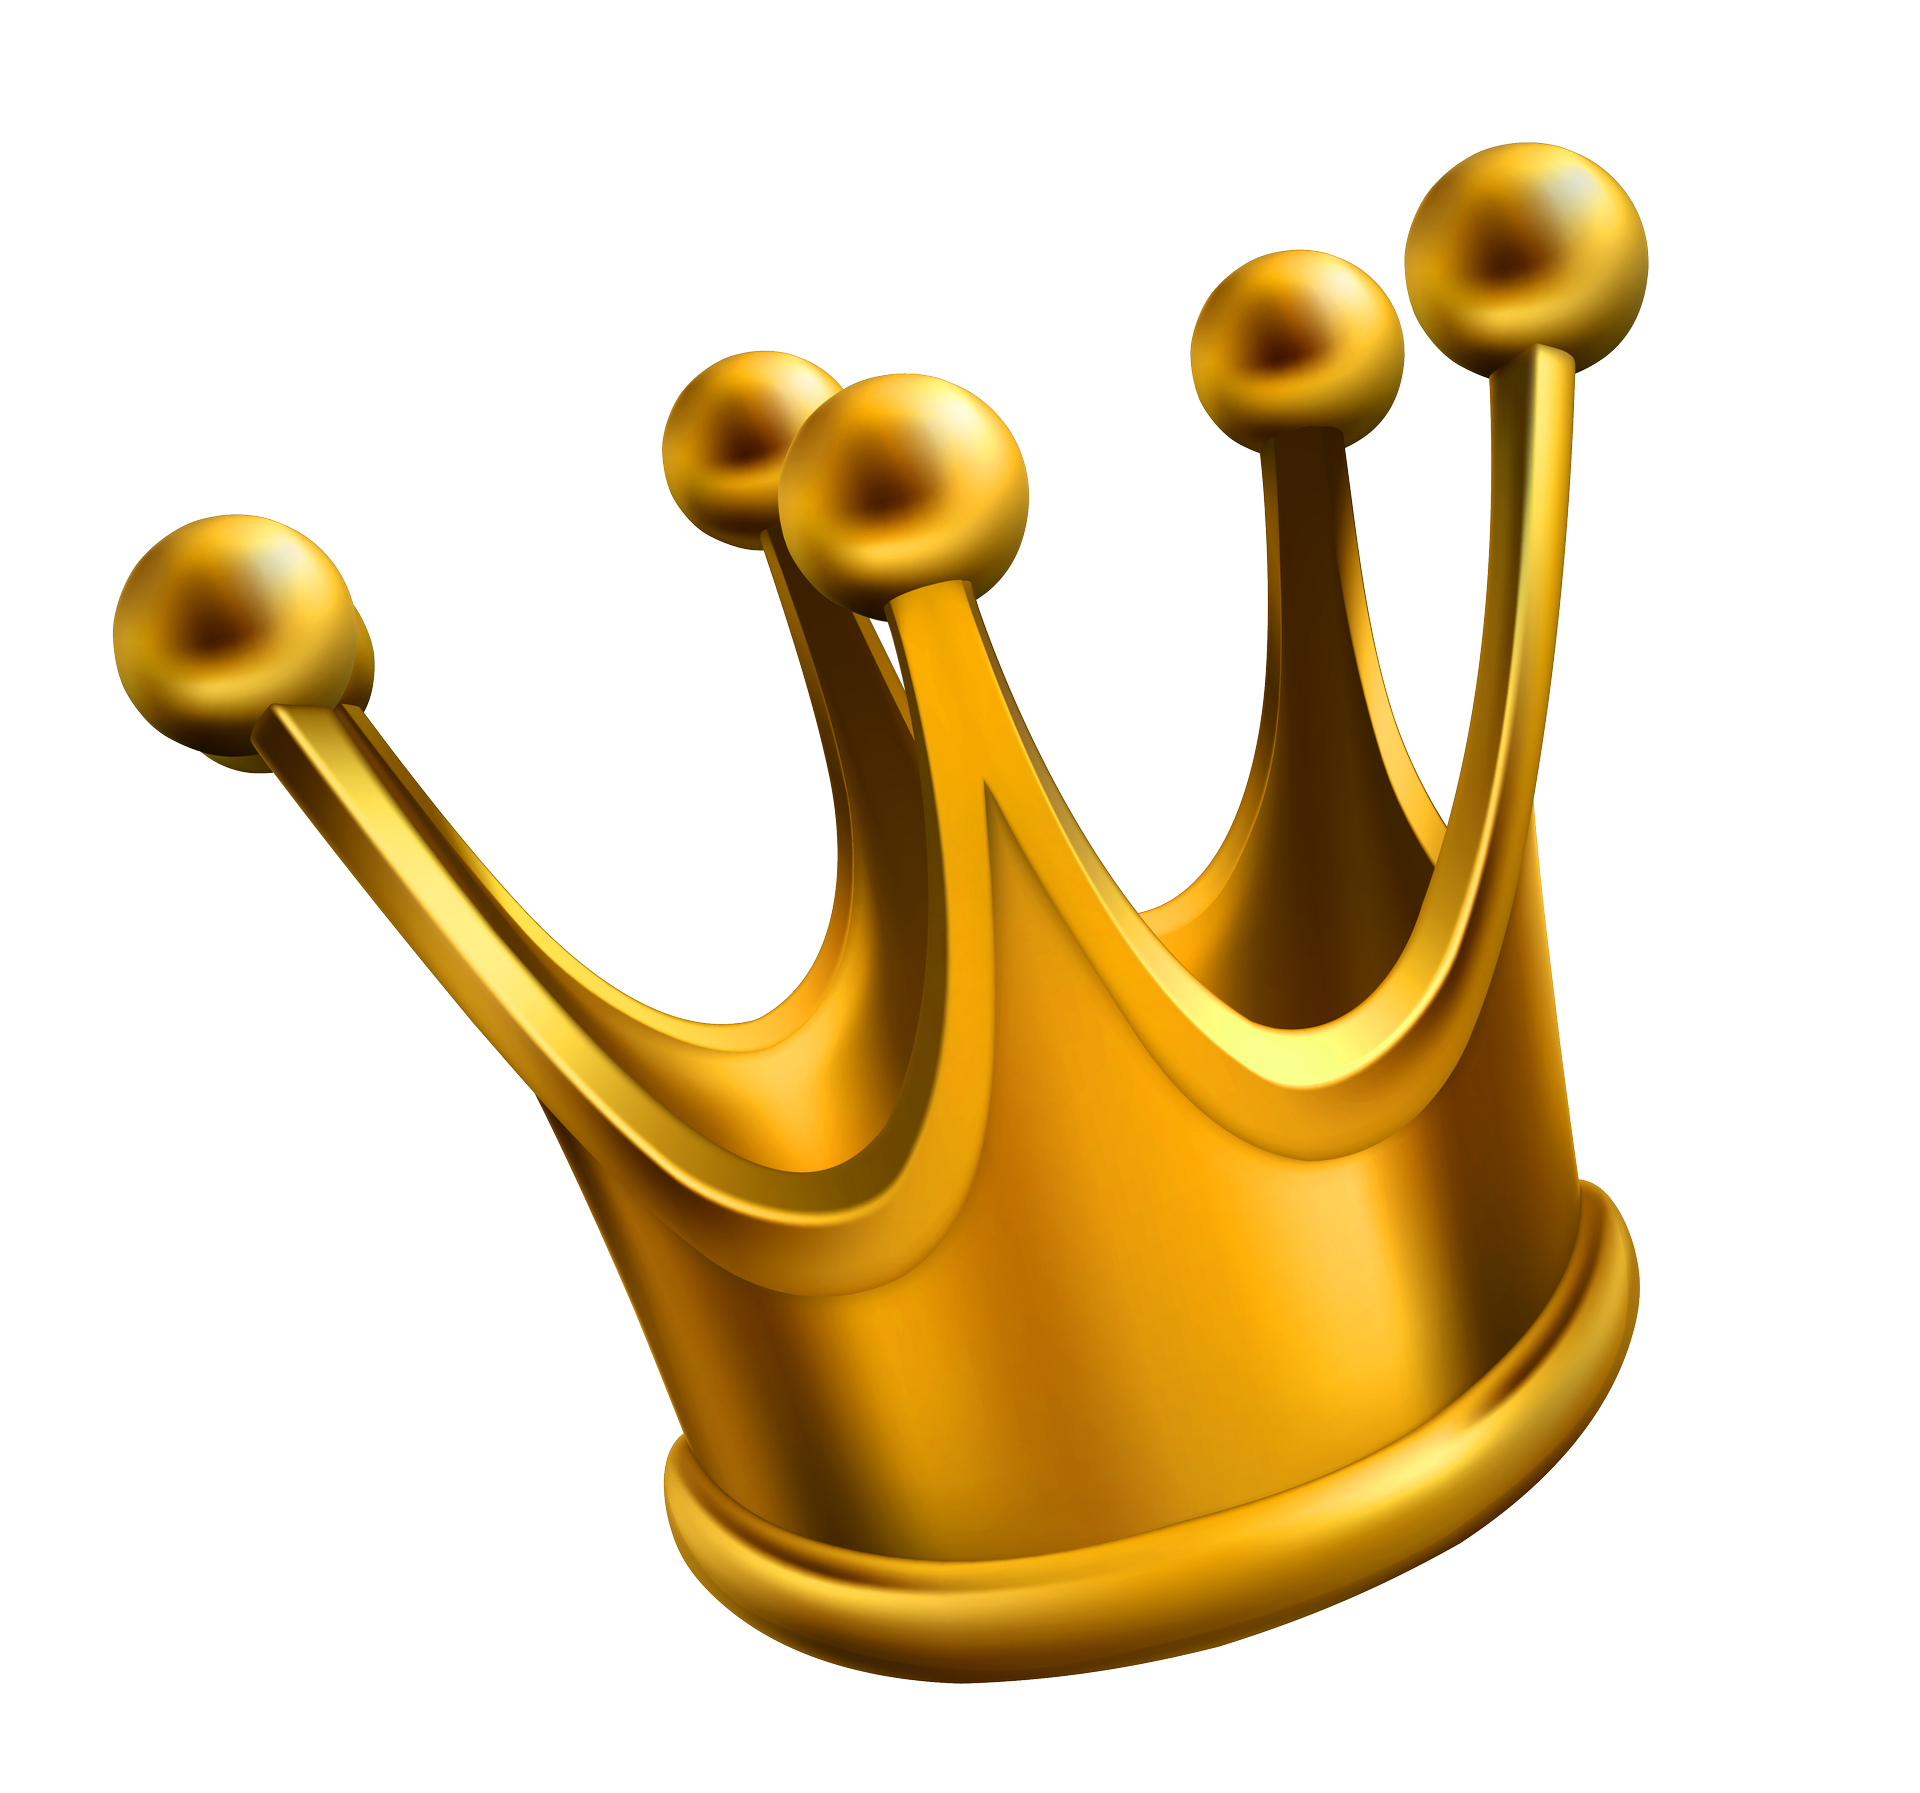 Crown images clipart vector library Crown Clipart at GetDrawings.com | Free for personal use Crown ... vector library